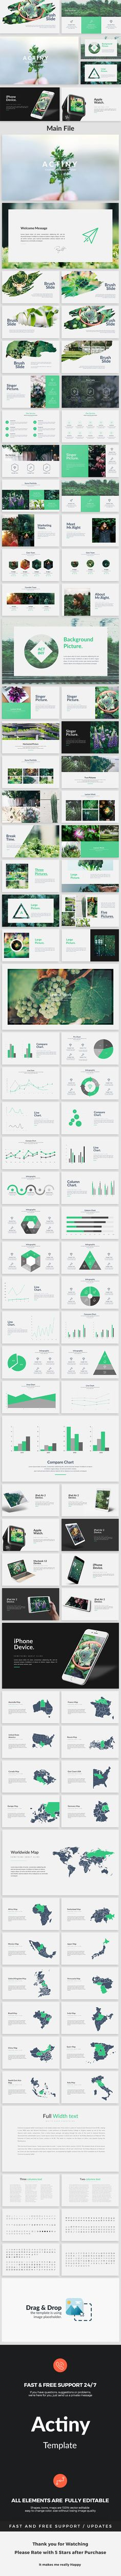 Actiny  Creative Powerpoint Template — Powerpoint PPT #bleached #investor presentation • Download ➝ https://graphicriver.net/item/actiny-creative-powerpoint-template/19256739?ref=pxcr